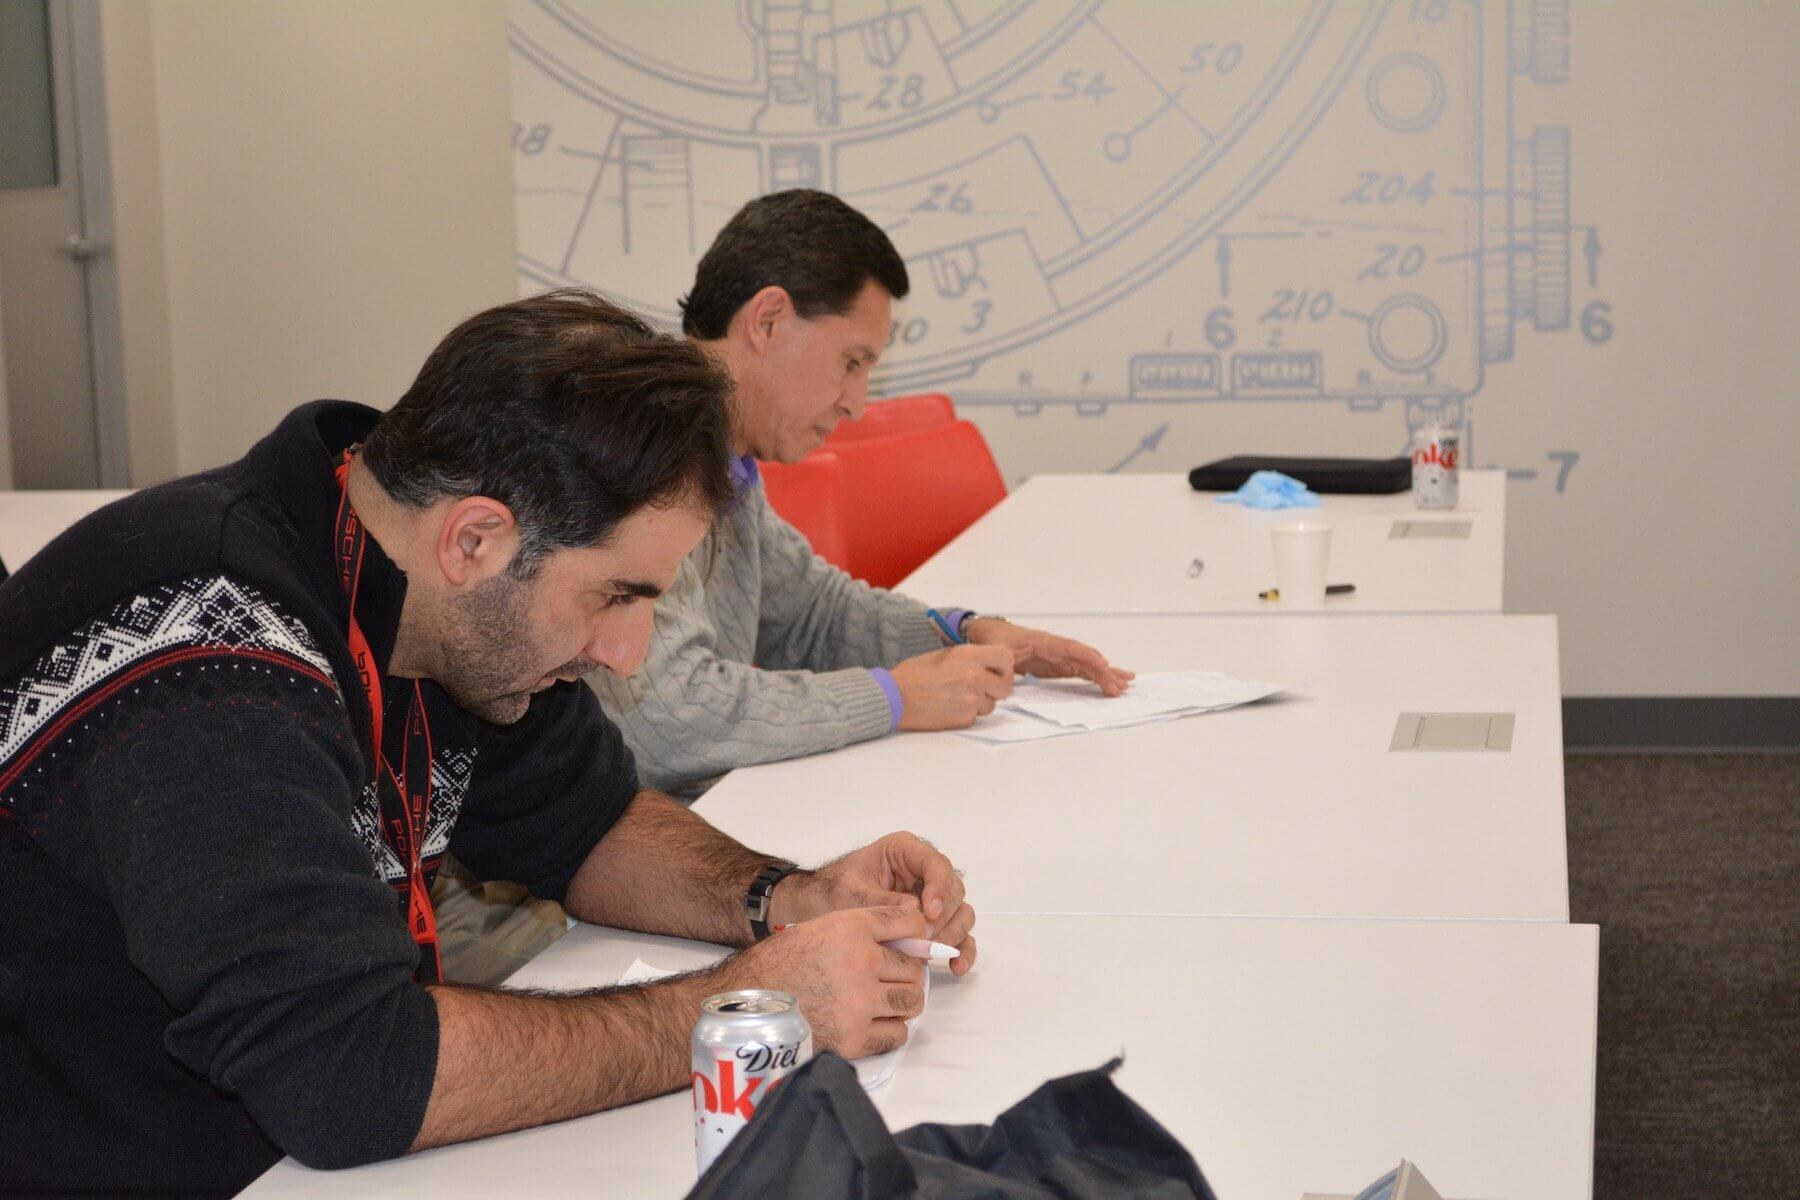 The judges included Nilson Salas, MD, right, and Ramyar Gilani, MD, both professors at Baylor College of Medicine.